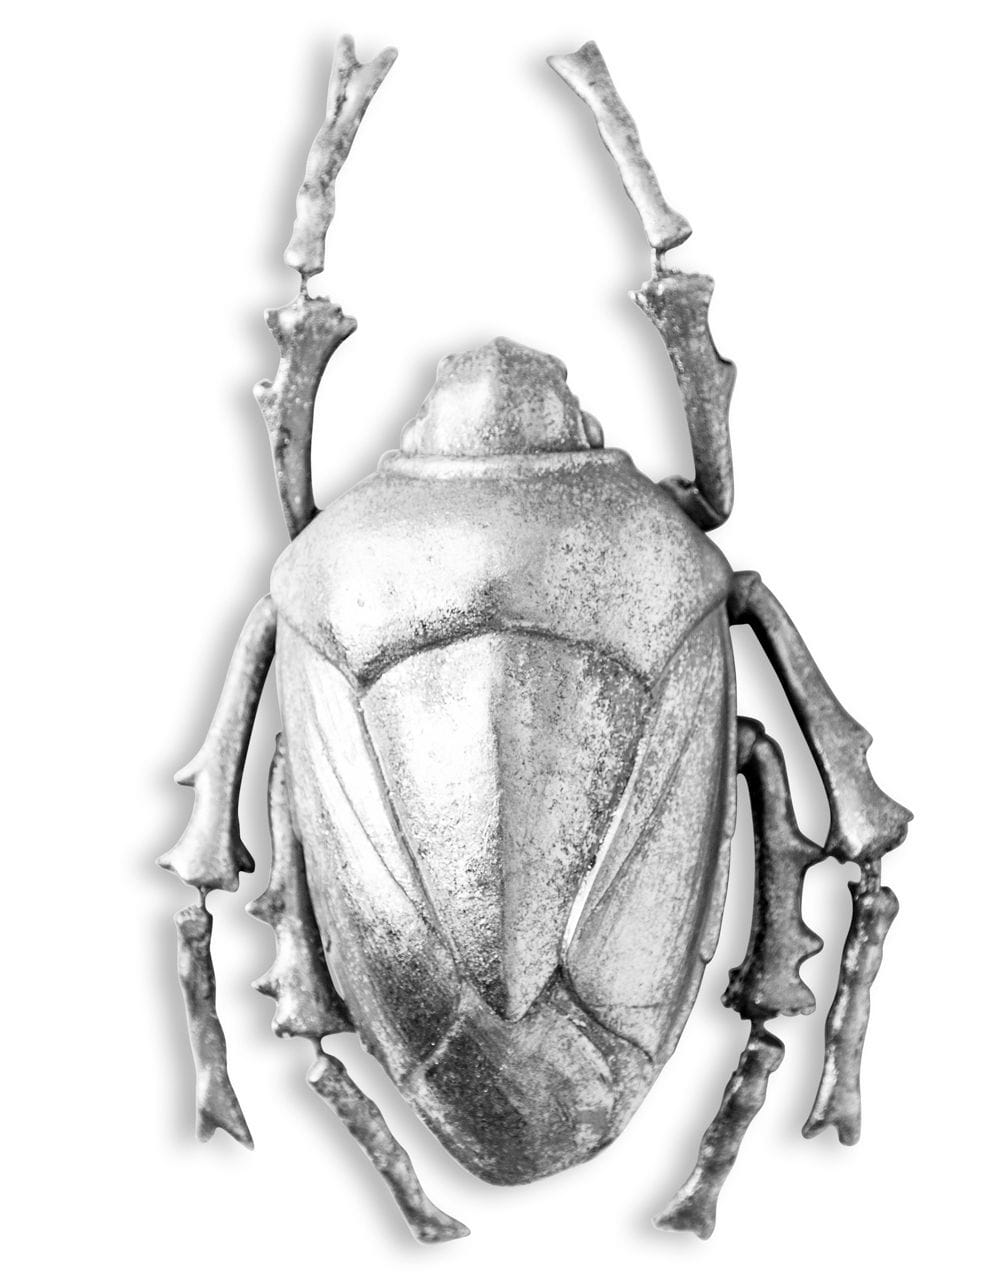 Large Silver Beetle Wall Decor - €69.00 | L27.5xW13.5xD5.6cm